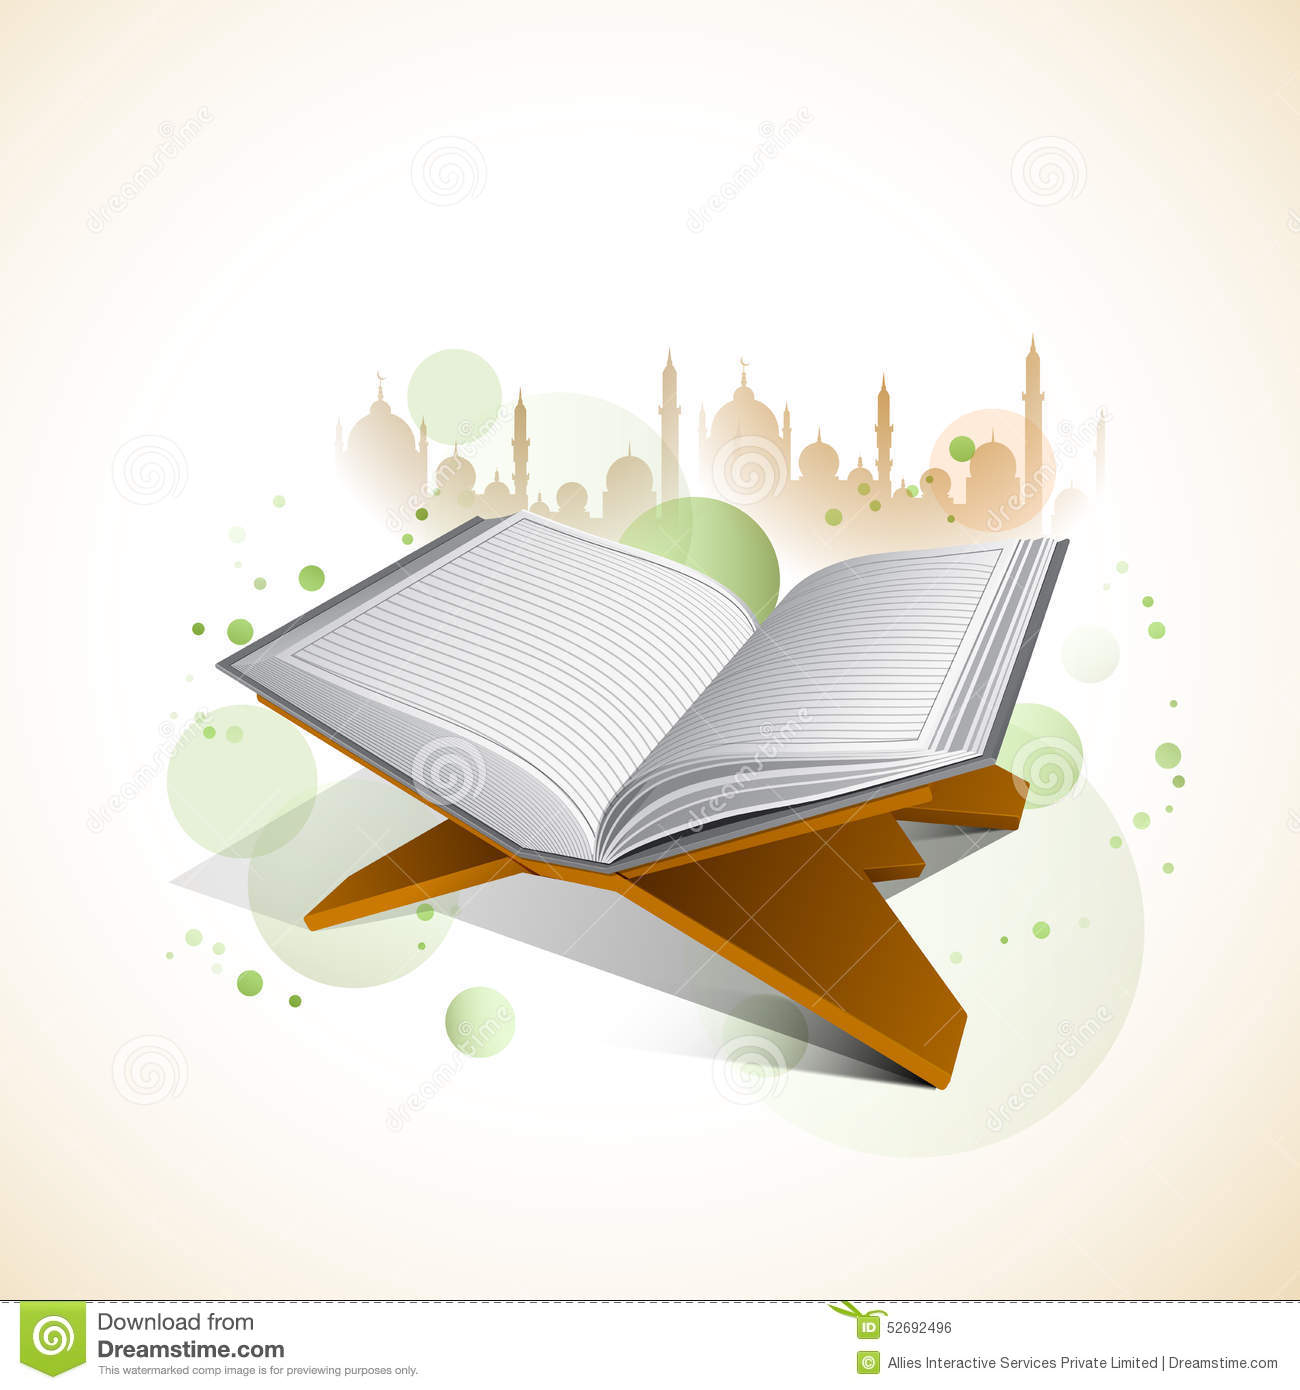 Holy quran images clipart.